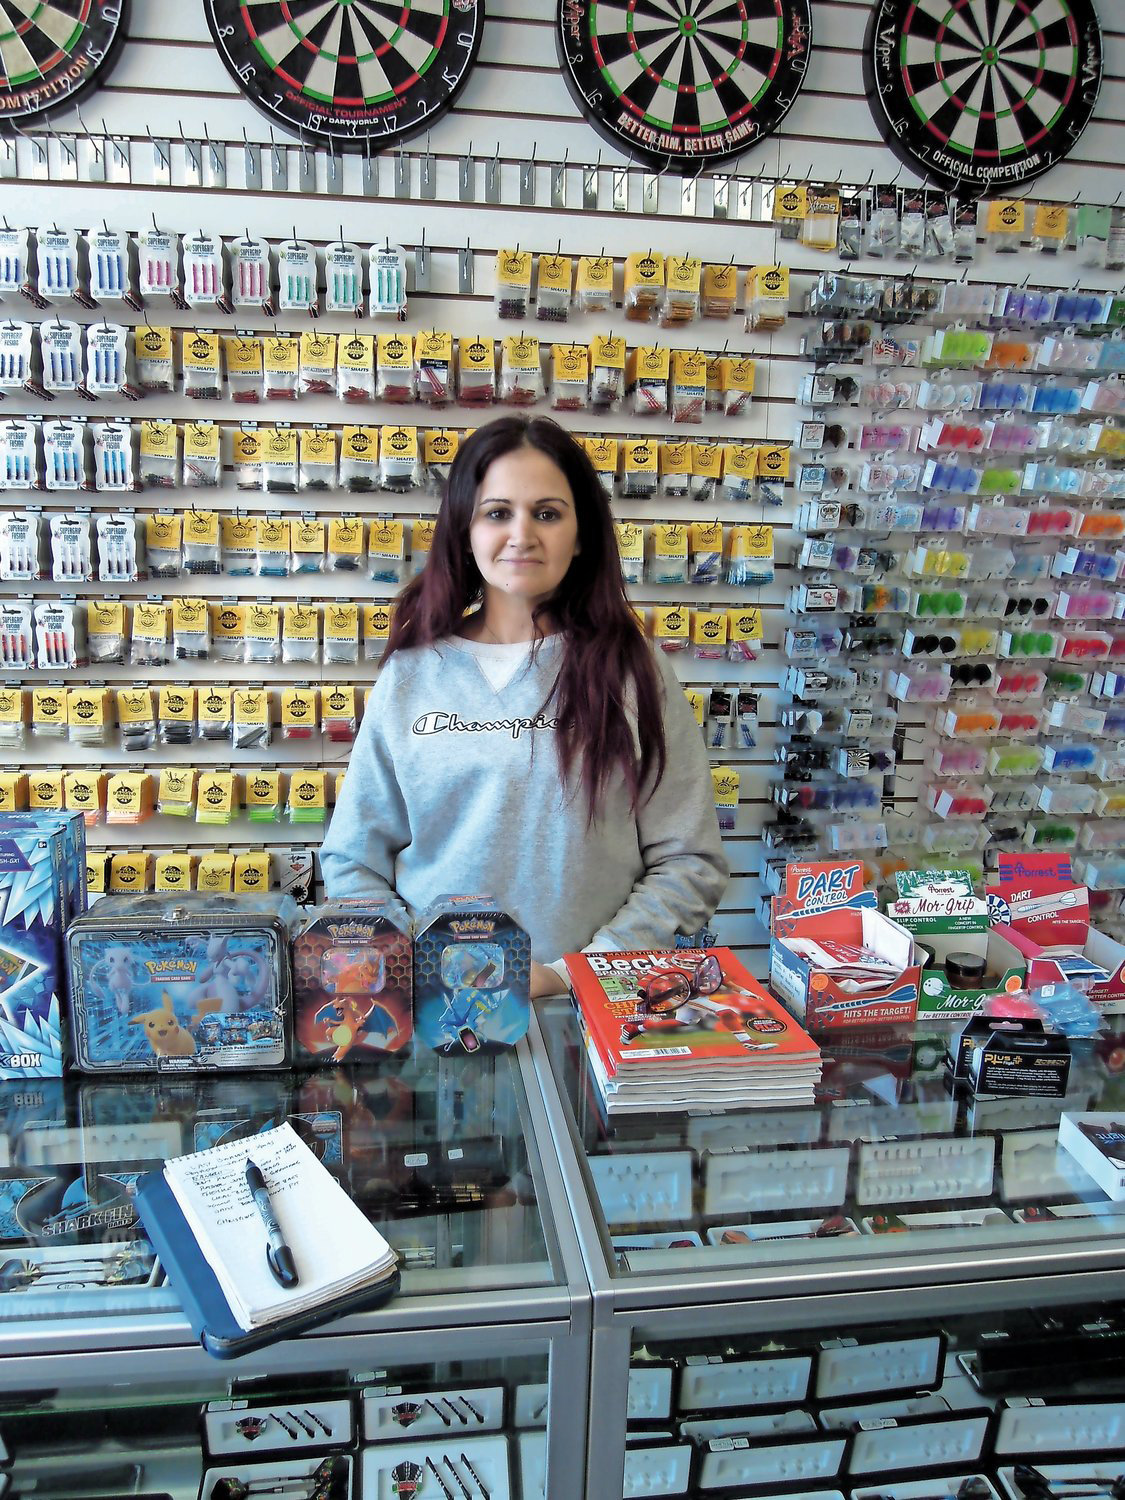 Christine D'Angelo, of D'Angelo's Sporting Goods, in Wantagh, said her business is now open, after she spent an extra two weeks wrangling with the rules of